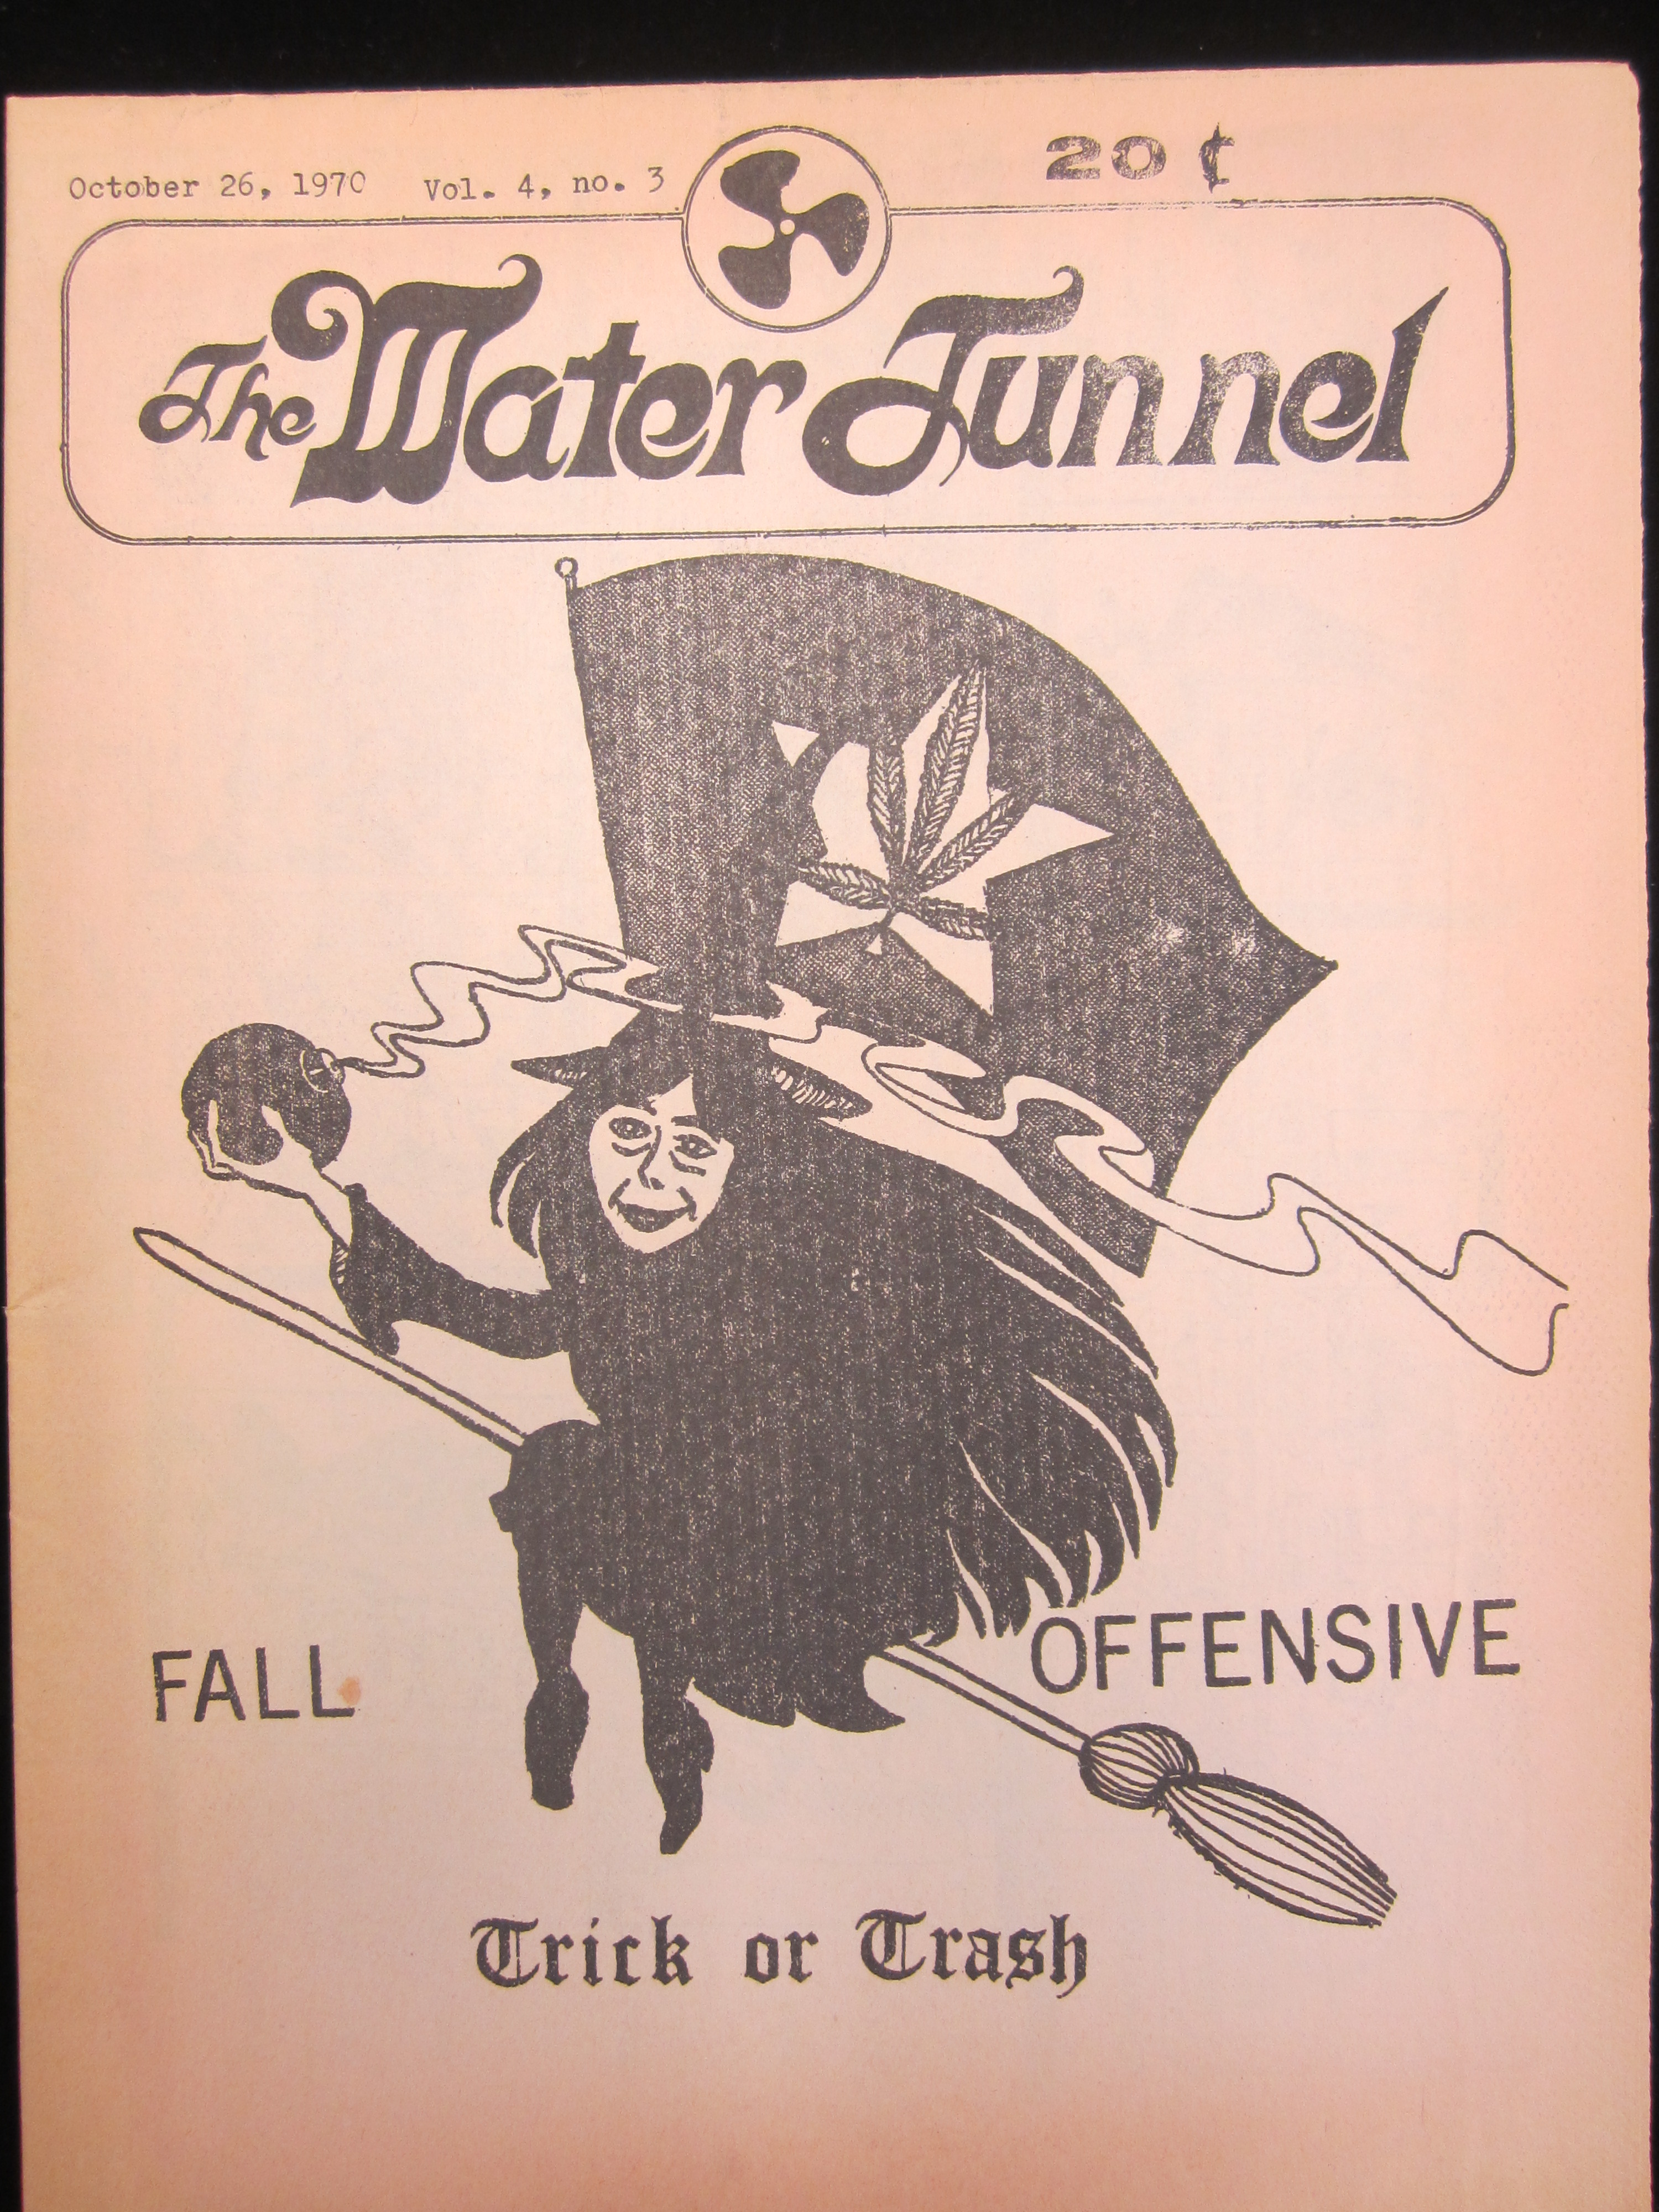 Cover of Vol. 4 No. 3 issue of The Water Tunnel